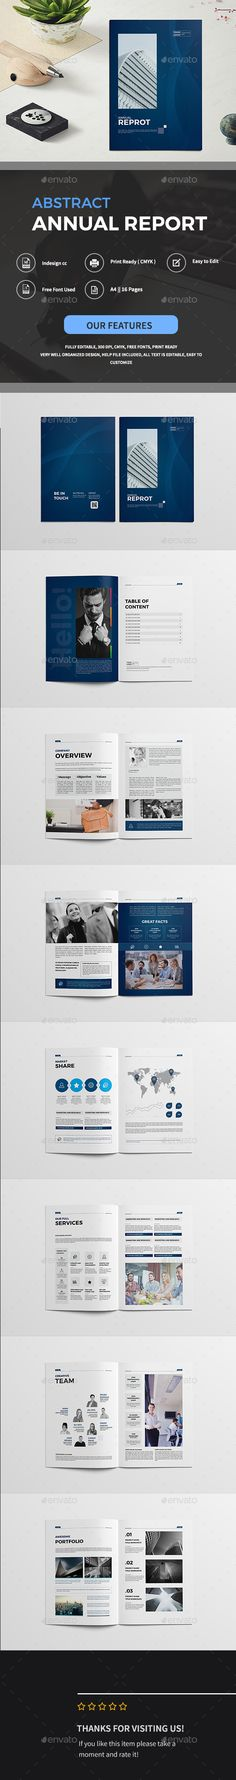 Abstract Annual Reprot Brochure — InDesign INDD #unique #trendy • Download ➝ https://graphicriver.net/item/abstract-annual-reprot-brochure/19605134?ref=pxcr